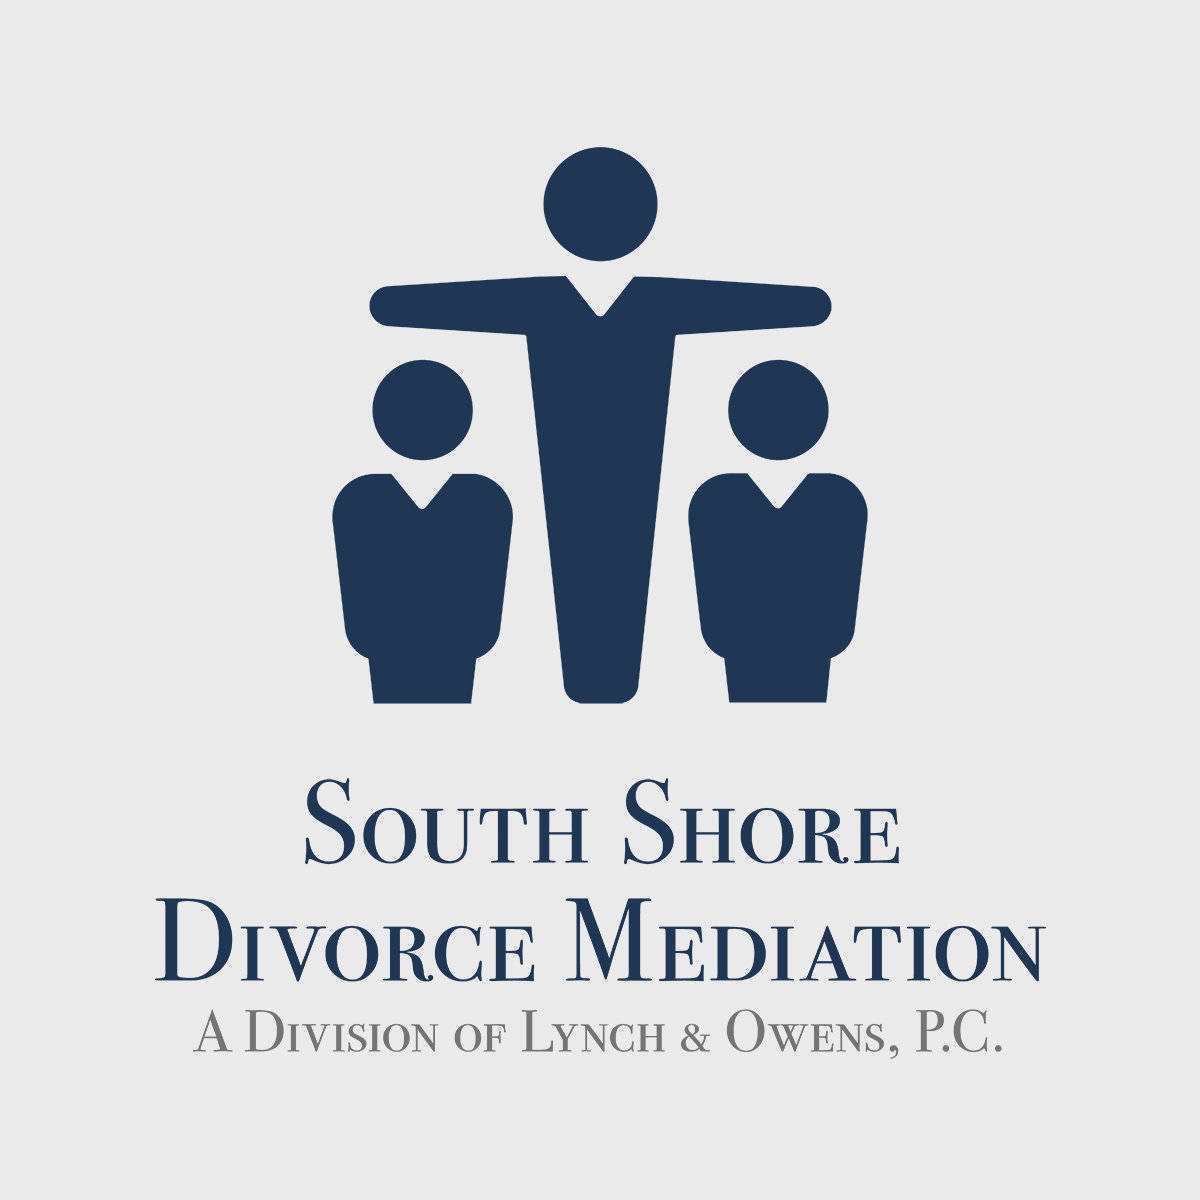 Lynch & Owens Launches: South Shore Divorce Mediation